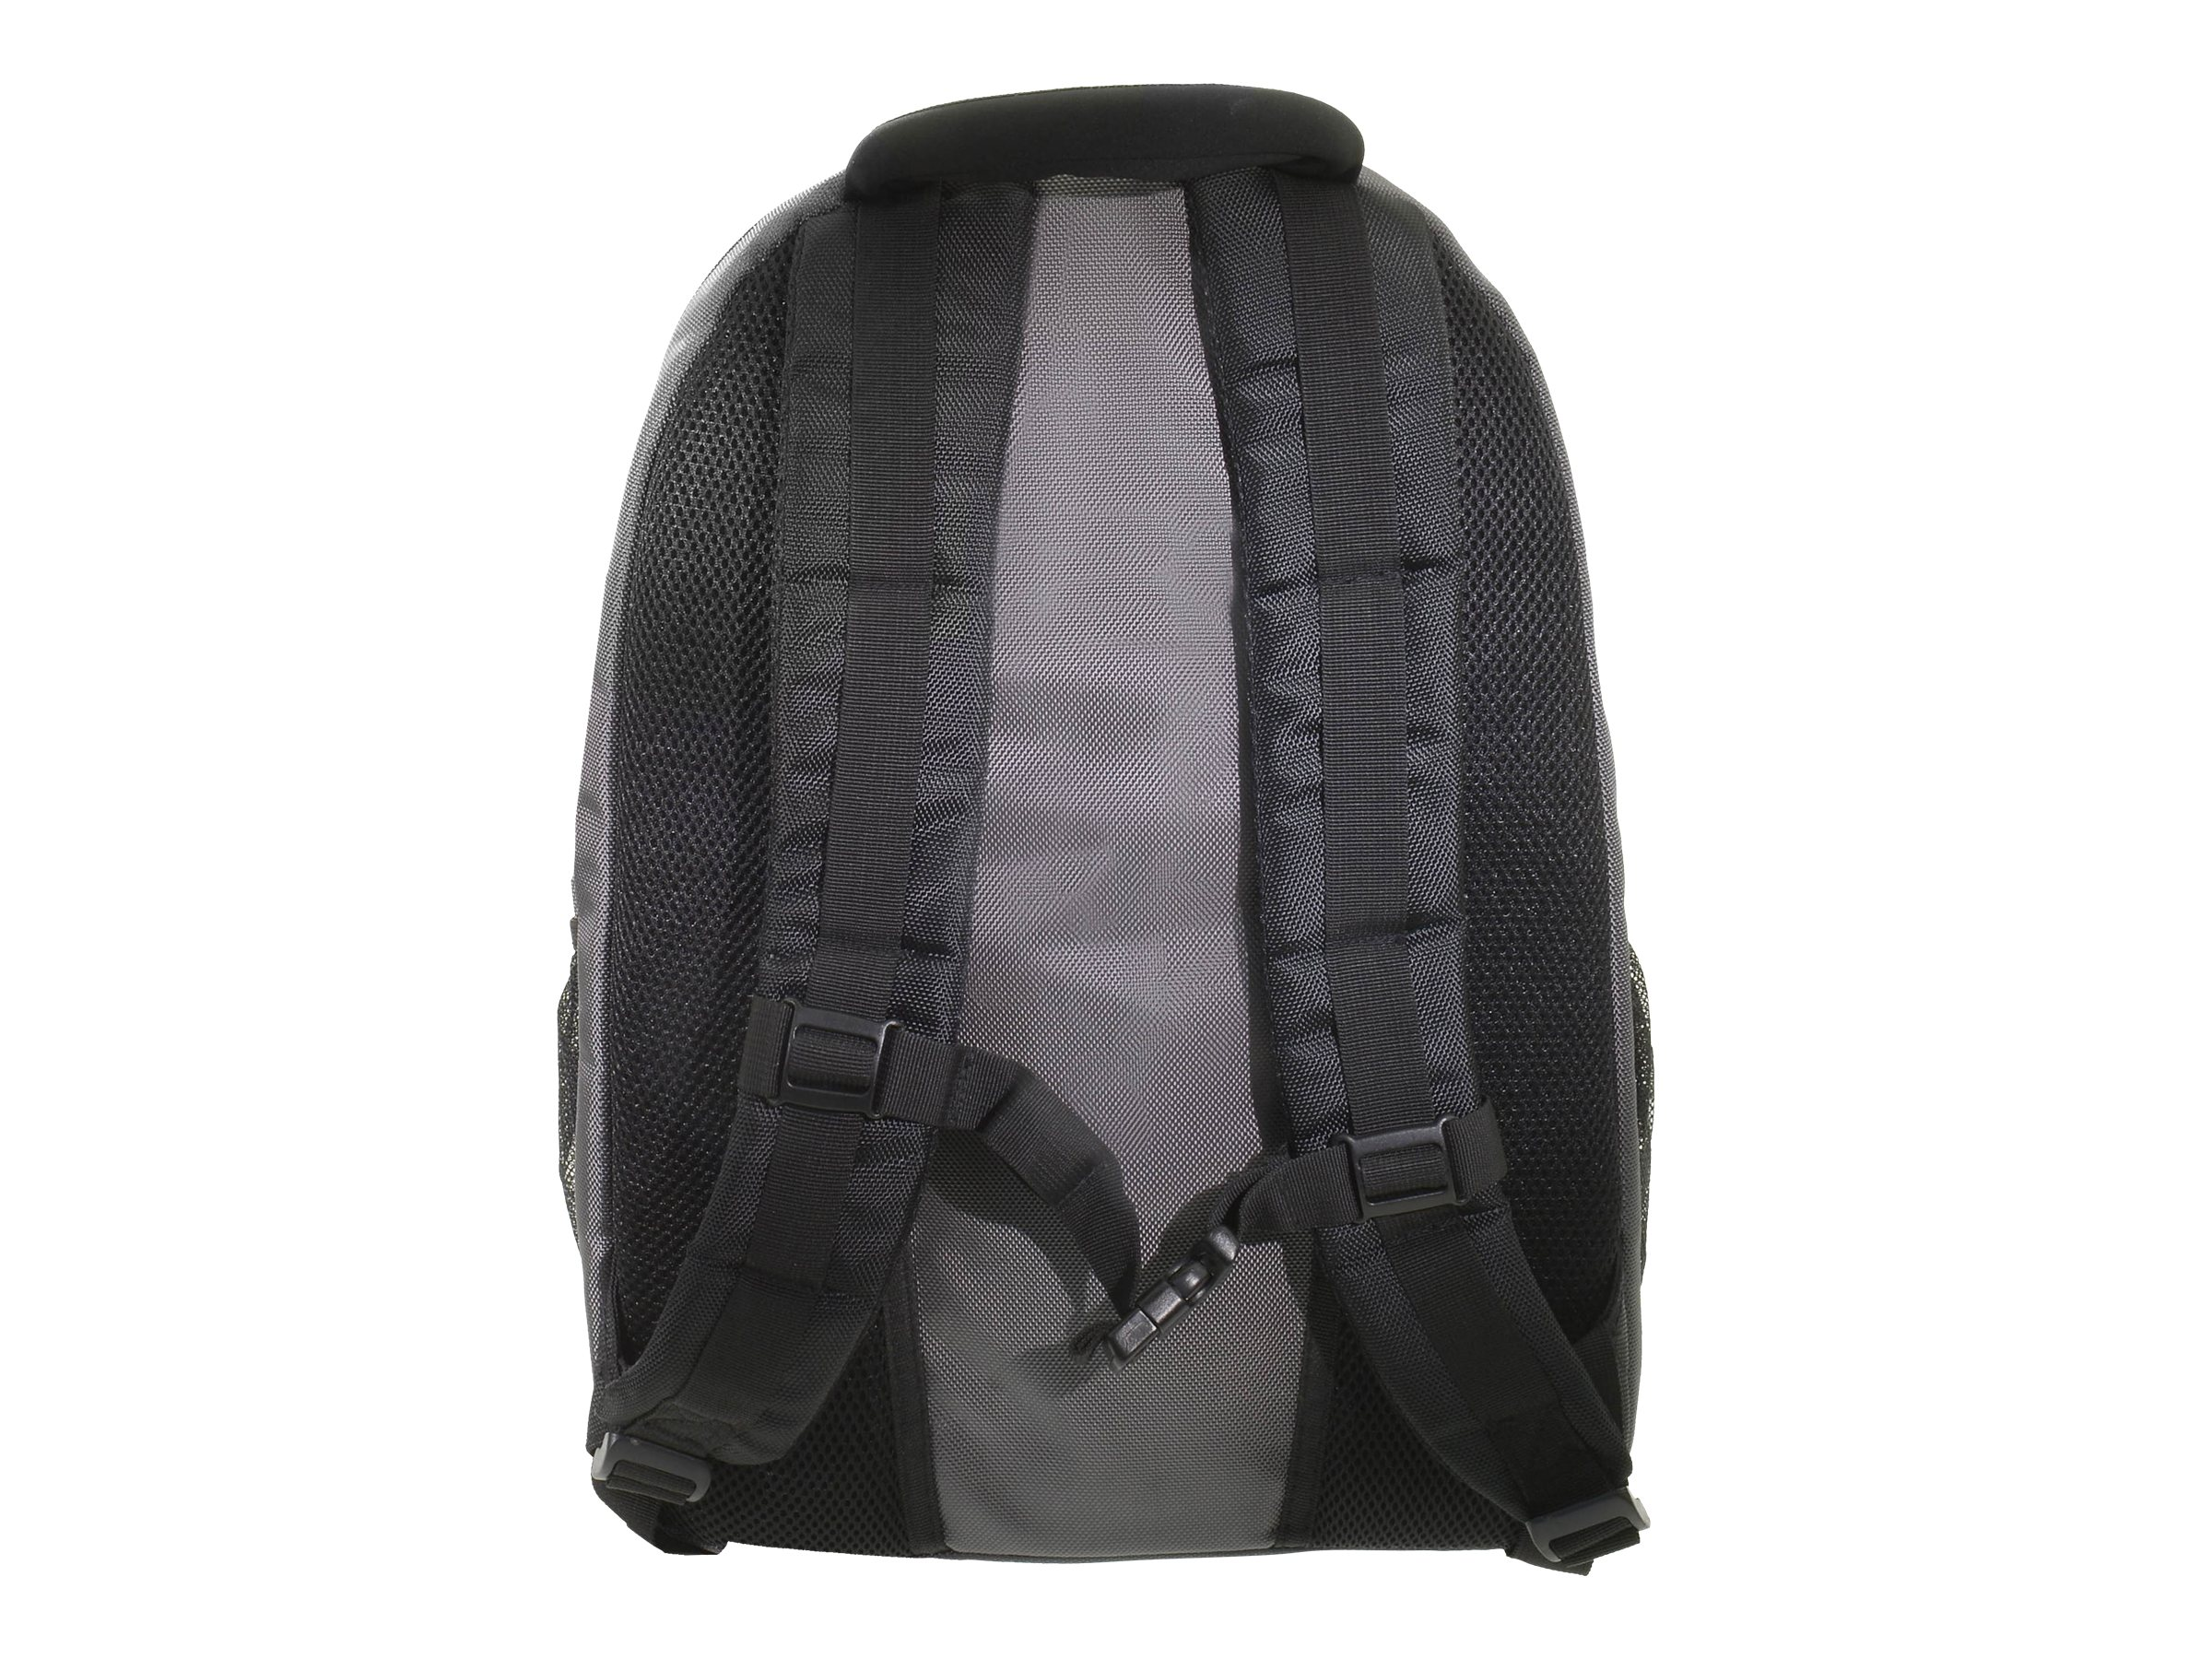 Eco Style Vortex Backpack Checkpoint Friendly, EVOR-BP16-CF